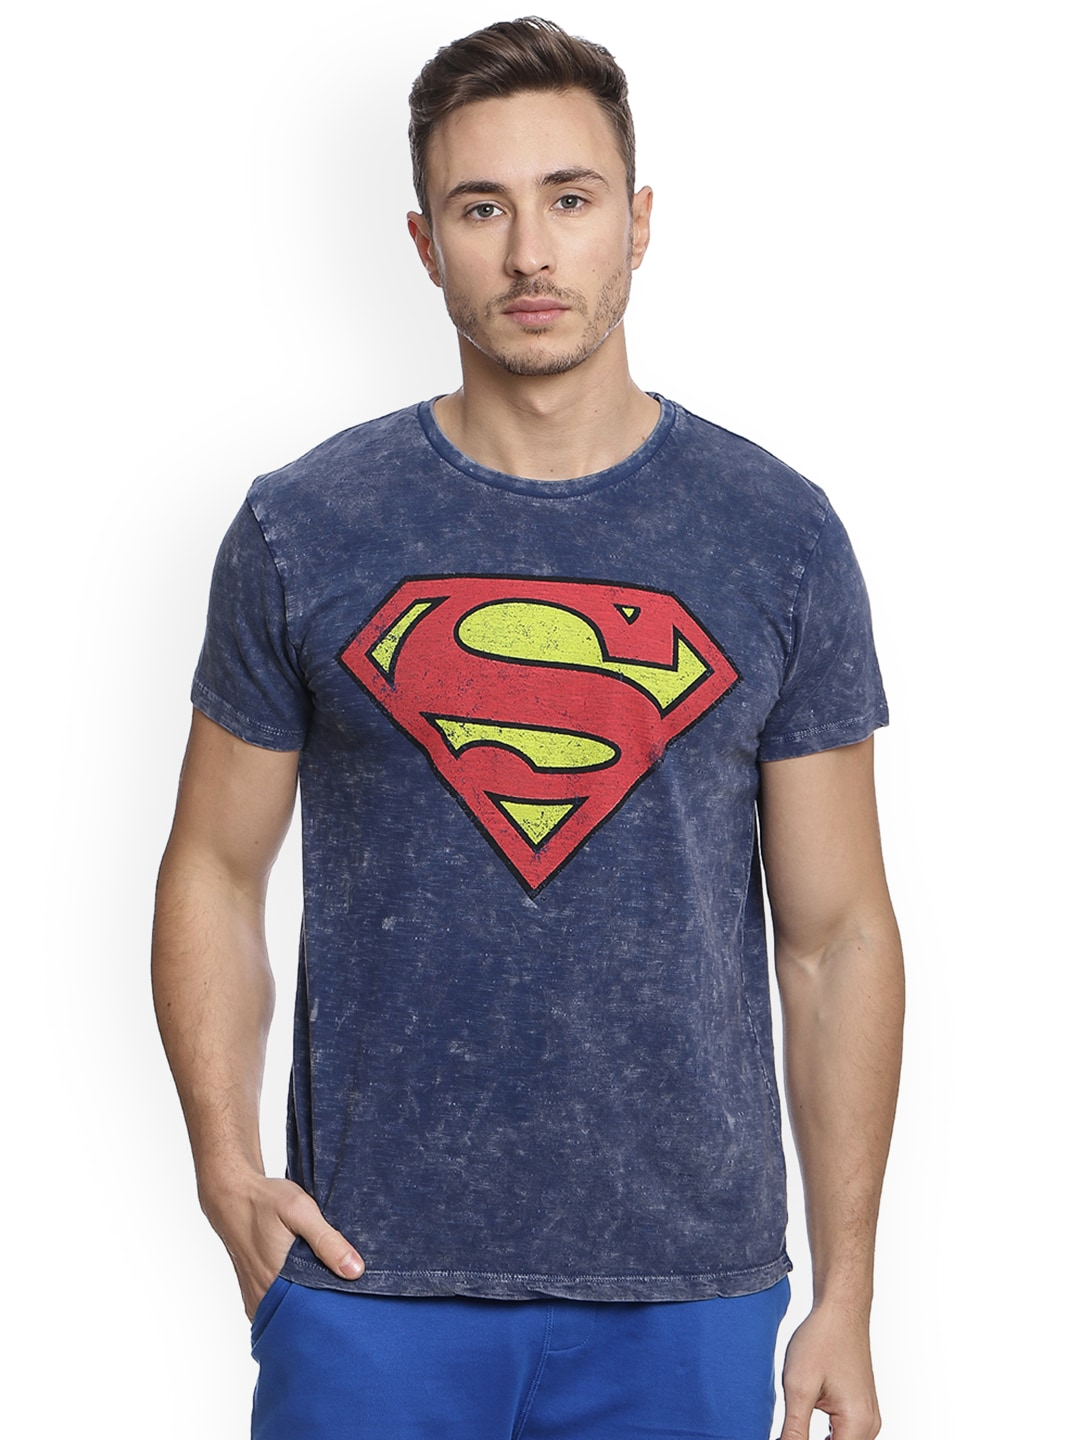 692449f118dc5 Superman T-shirts Buy Superman T-shirt Online in India at Myntra